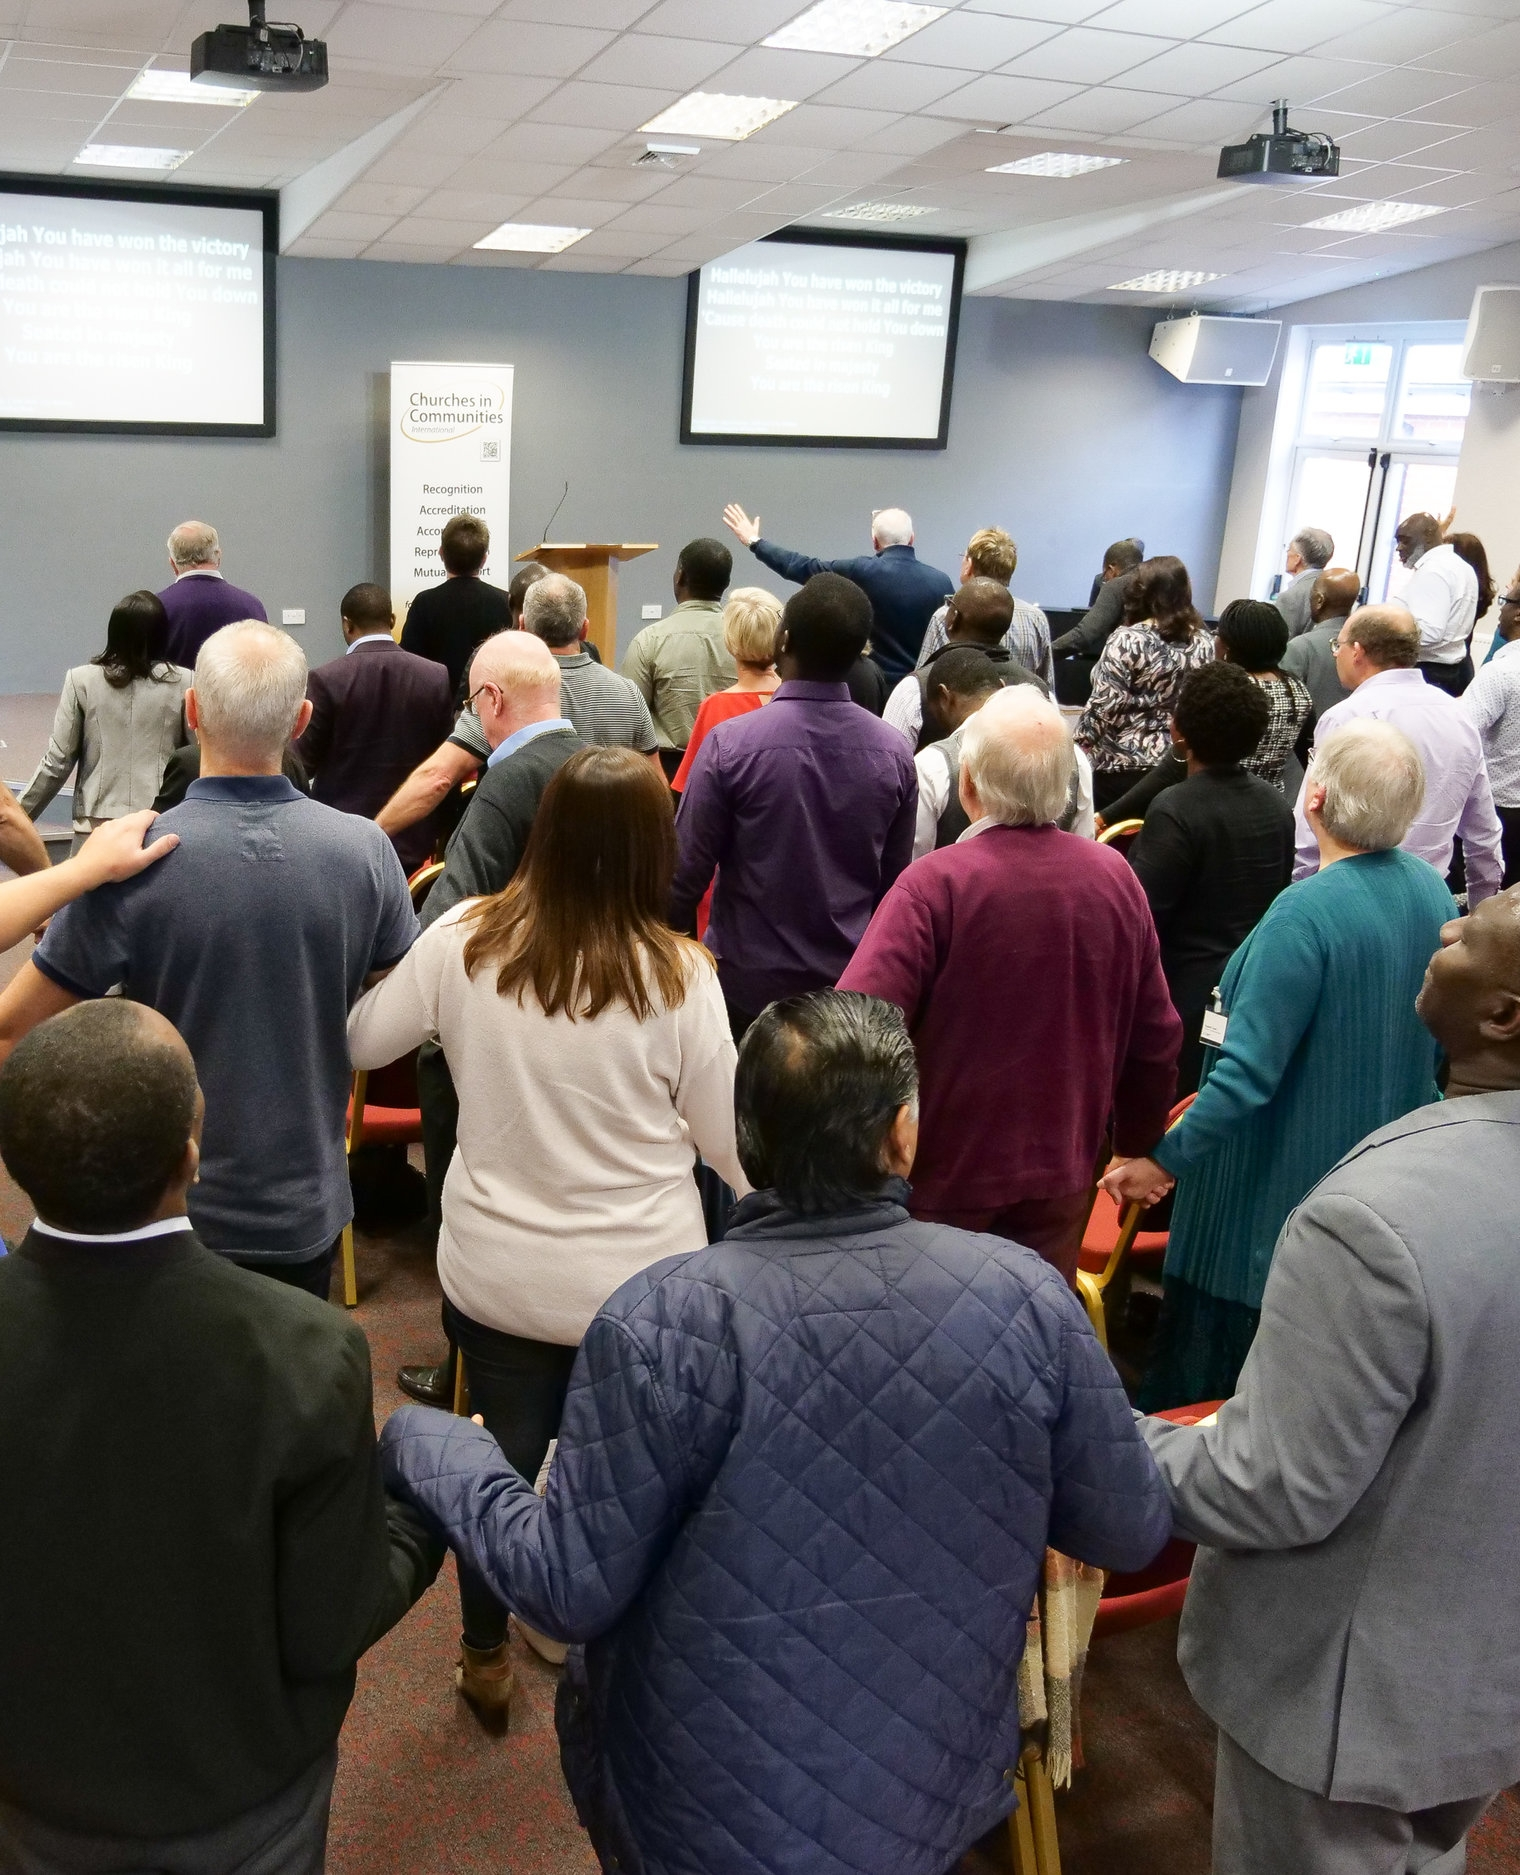 CiC is unlike any other network I have explored! - The expectations of membership are clear and really well thought through, serving to facilitate rather than regulate my ministry.CiC places a strong emphasis on relationships and mutual encouragement, providing precious opportunities such as the Ministers' Fellowship to meet and connect with like-minded people from a wide variety of ministries.The peer reviews and accountability structures are excellent – helping me to set clear ministry targets and clarify my vision for the year ahead.- Pastor Keith Dolding, The Well, Reading, Berkshire